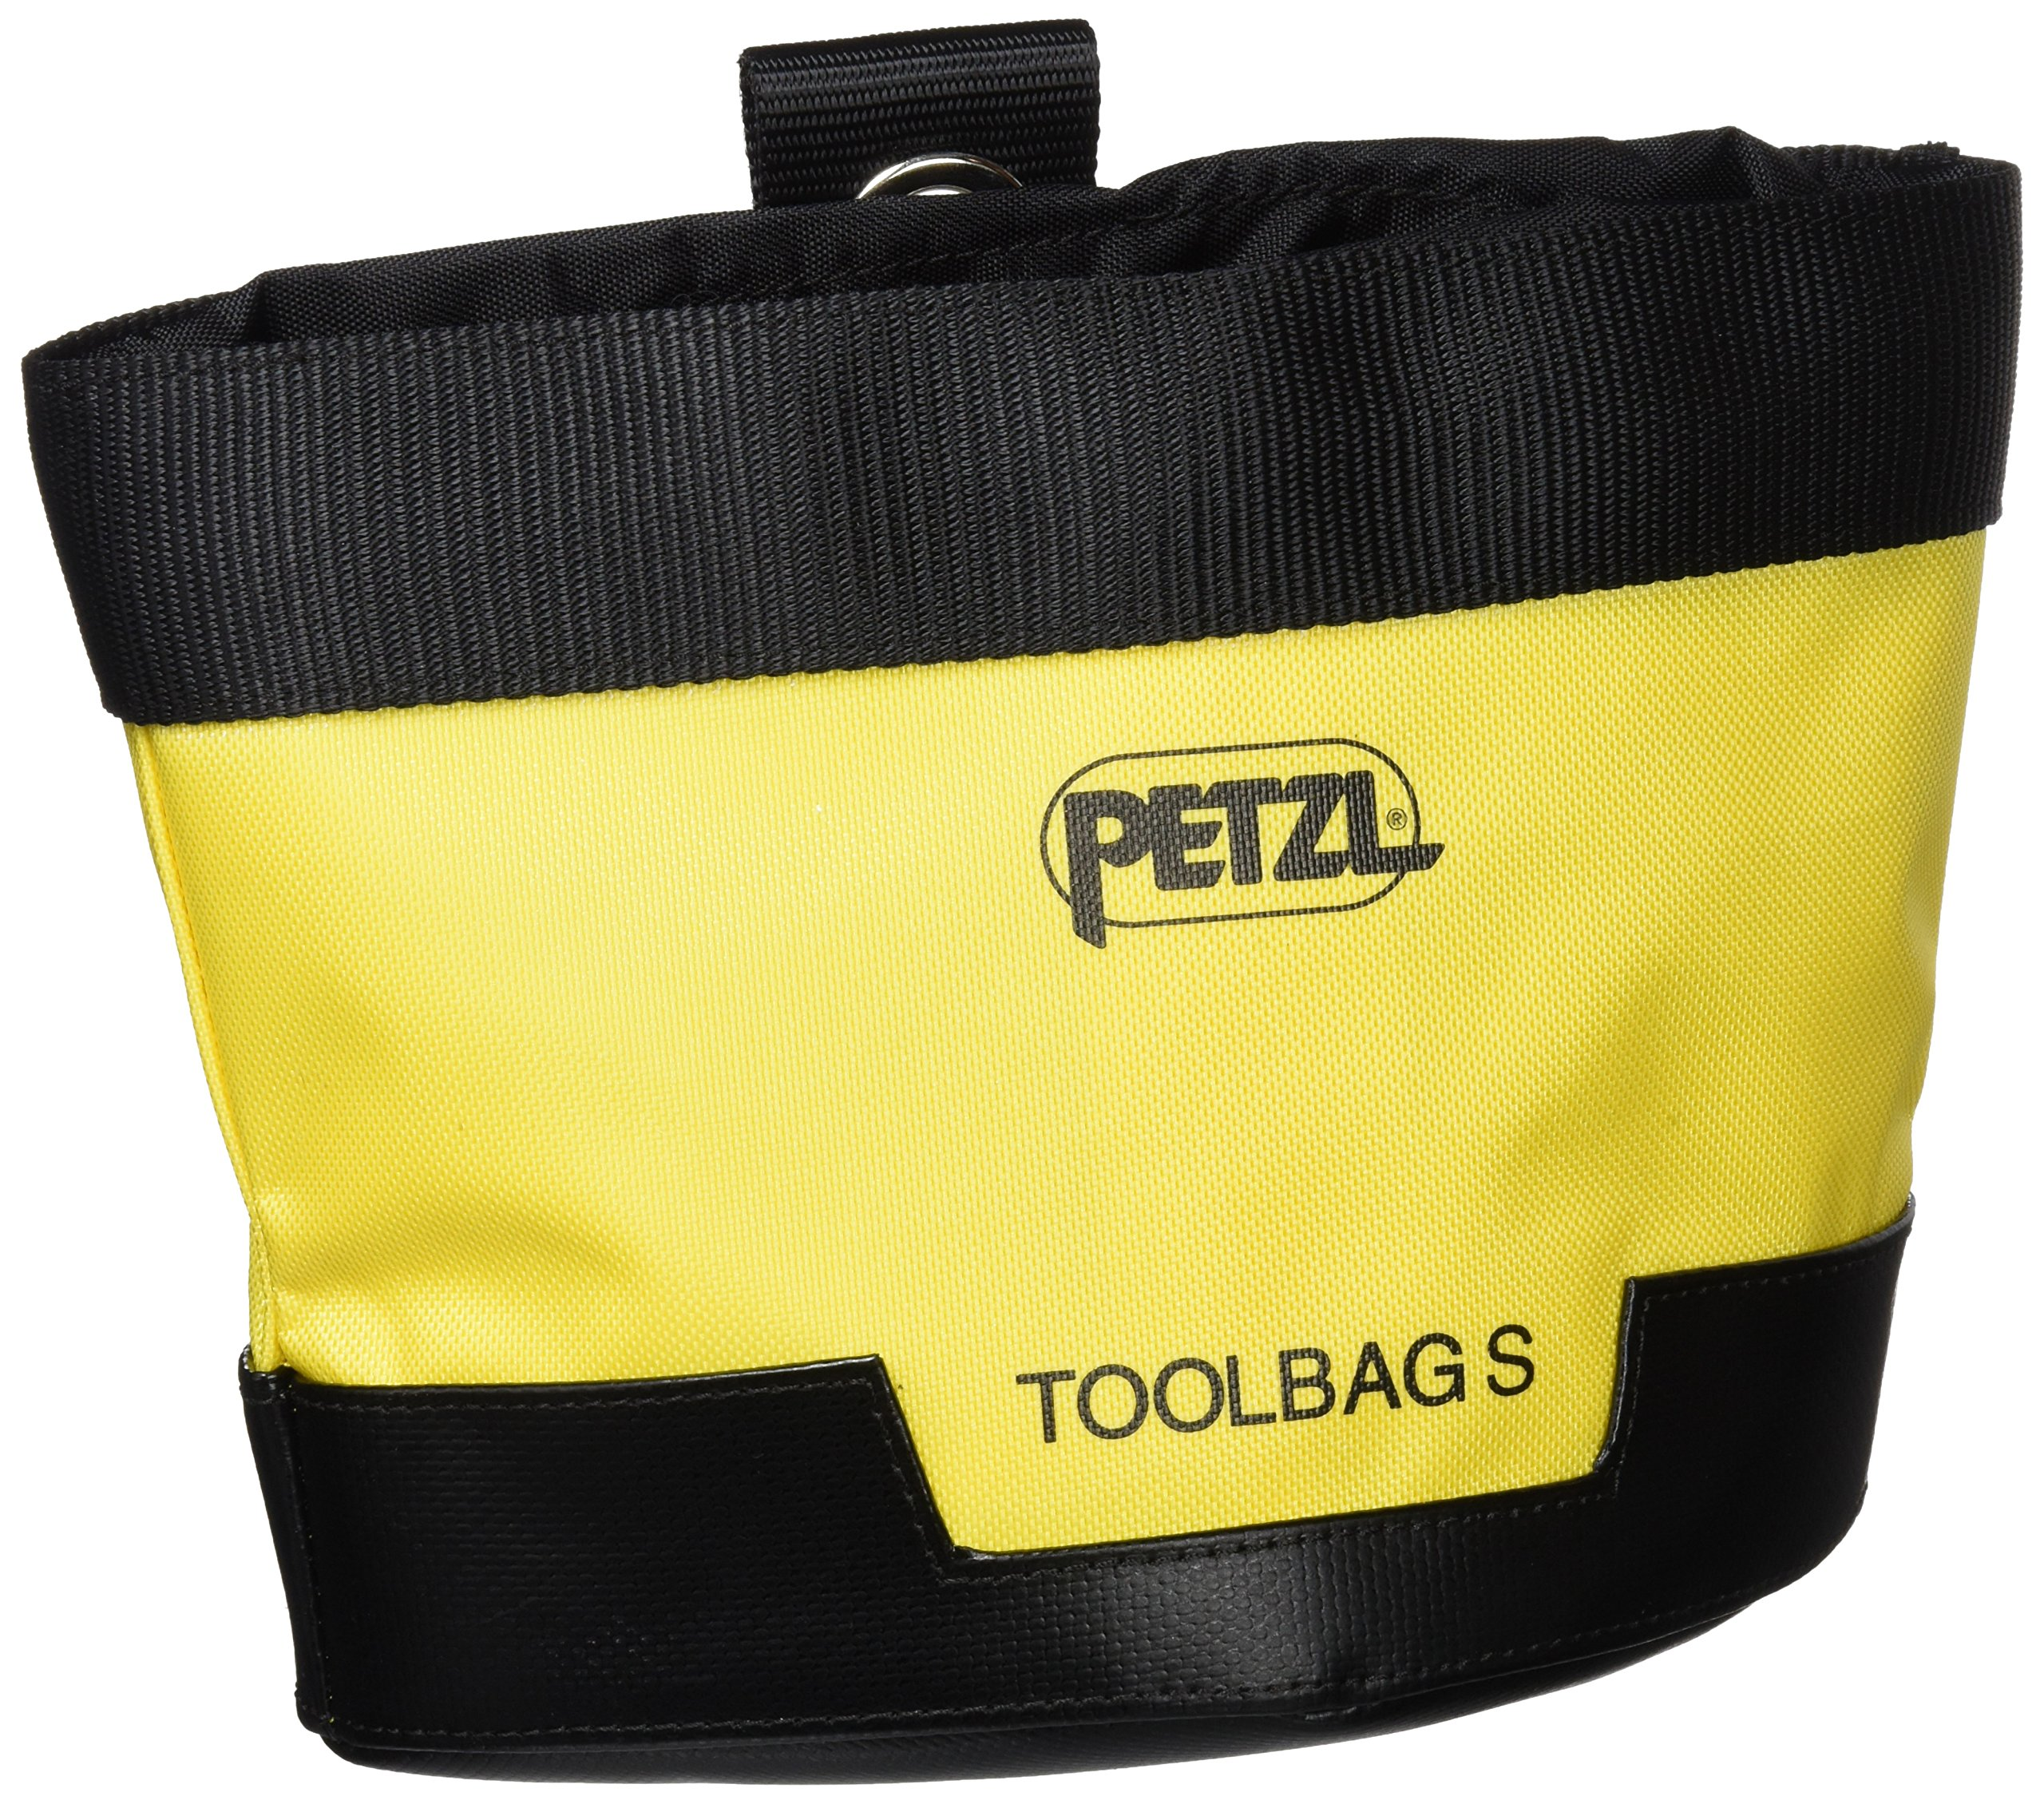 PETZL - TOOLBAG, Tool Pouch, Small by PETZL